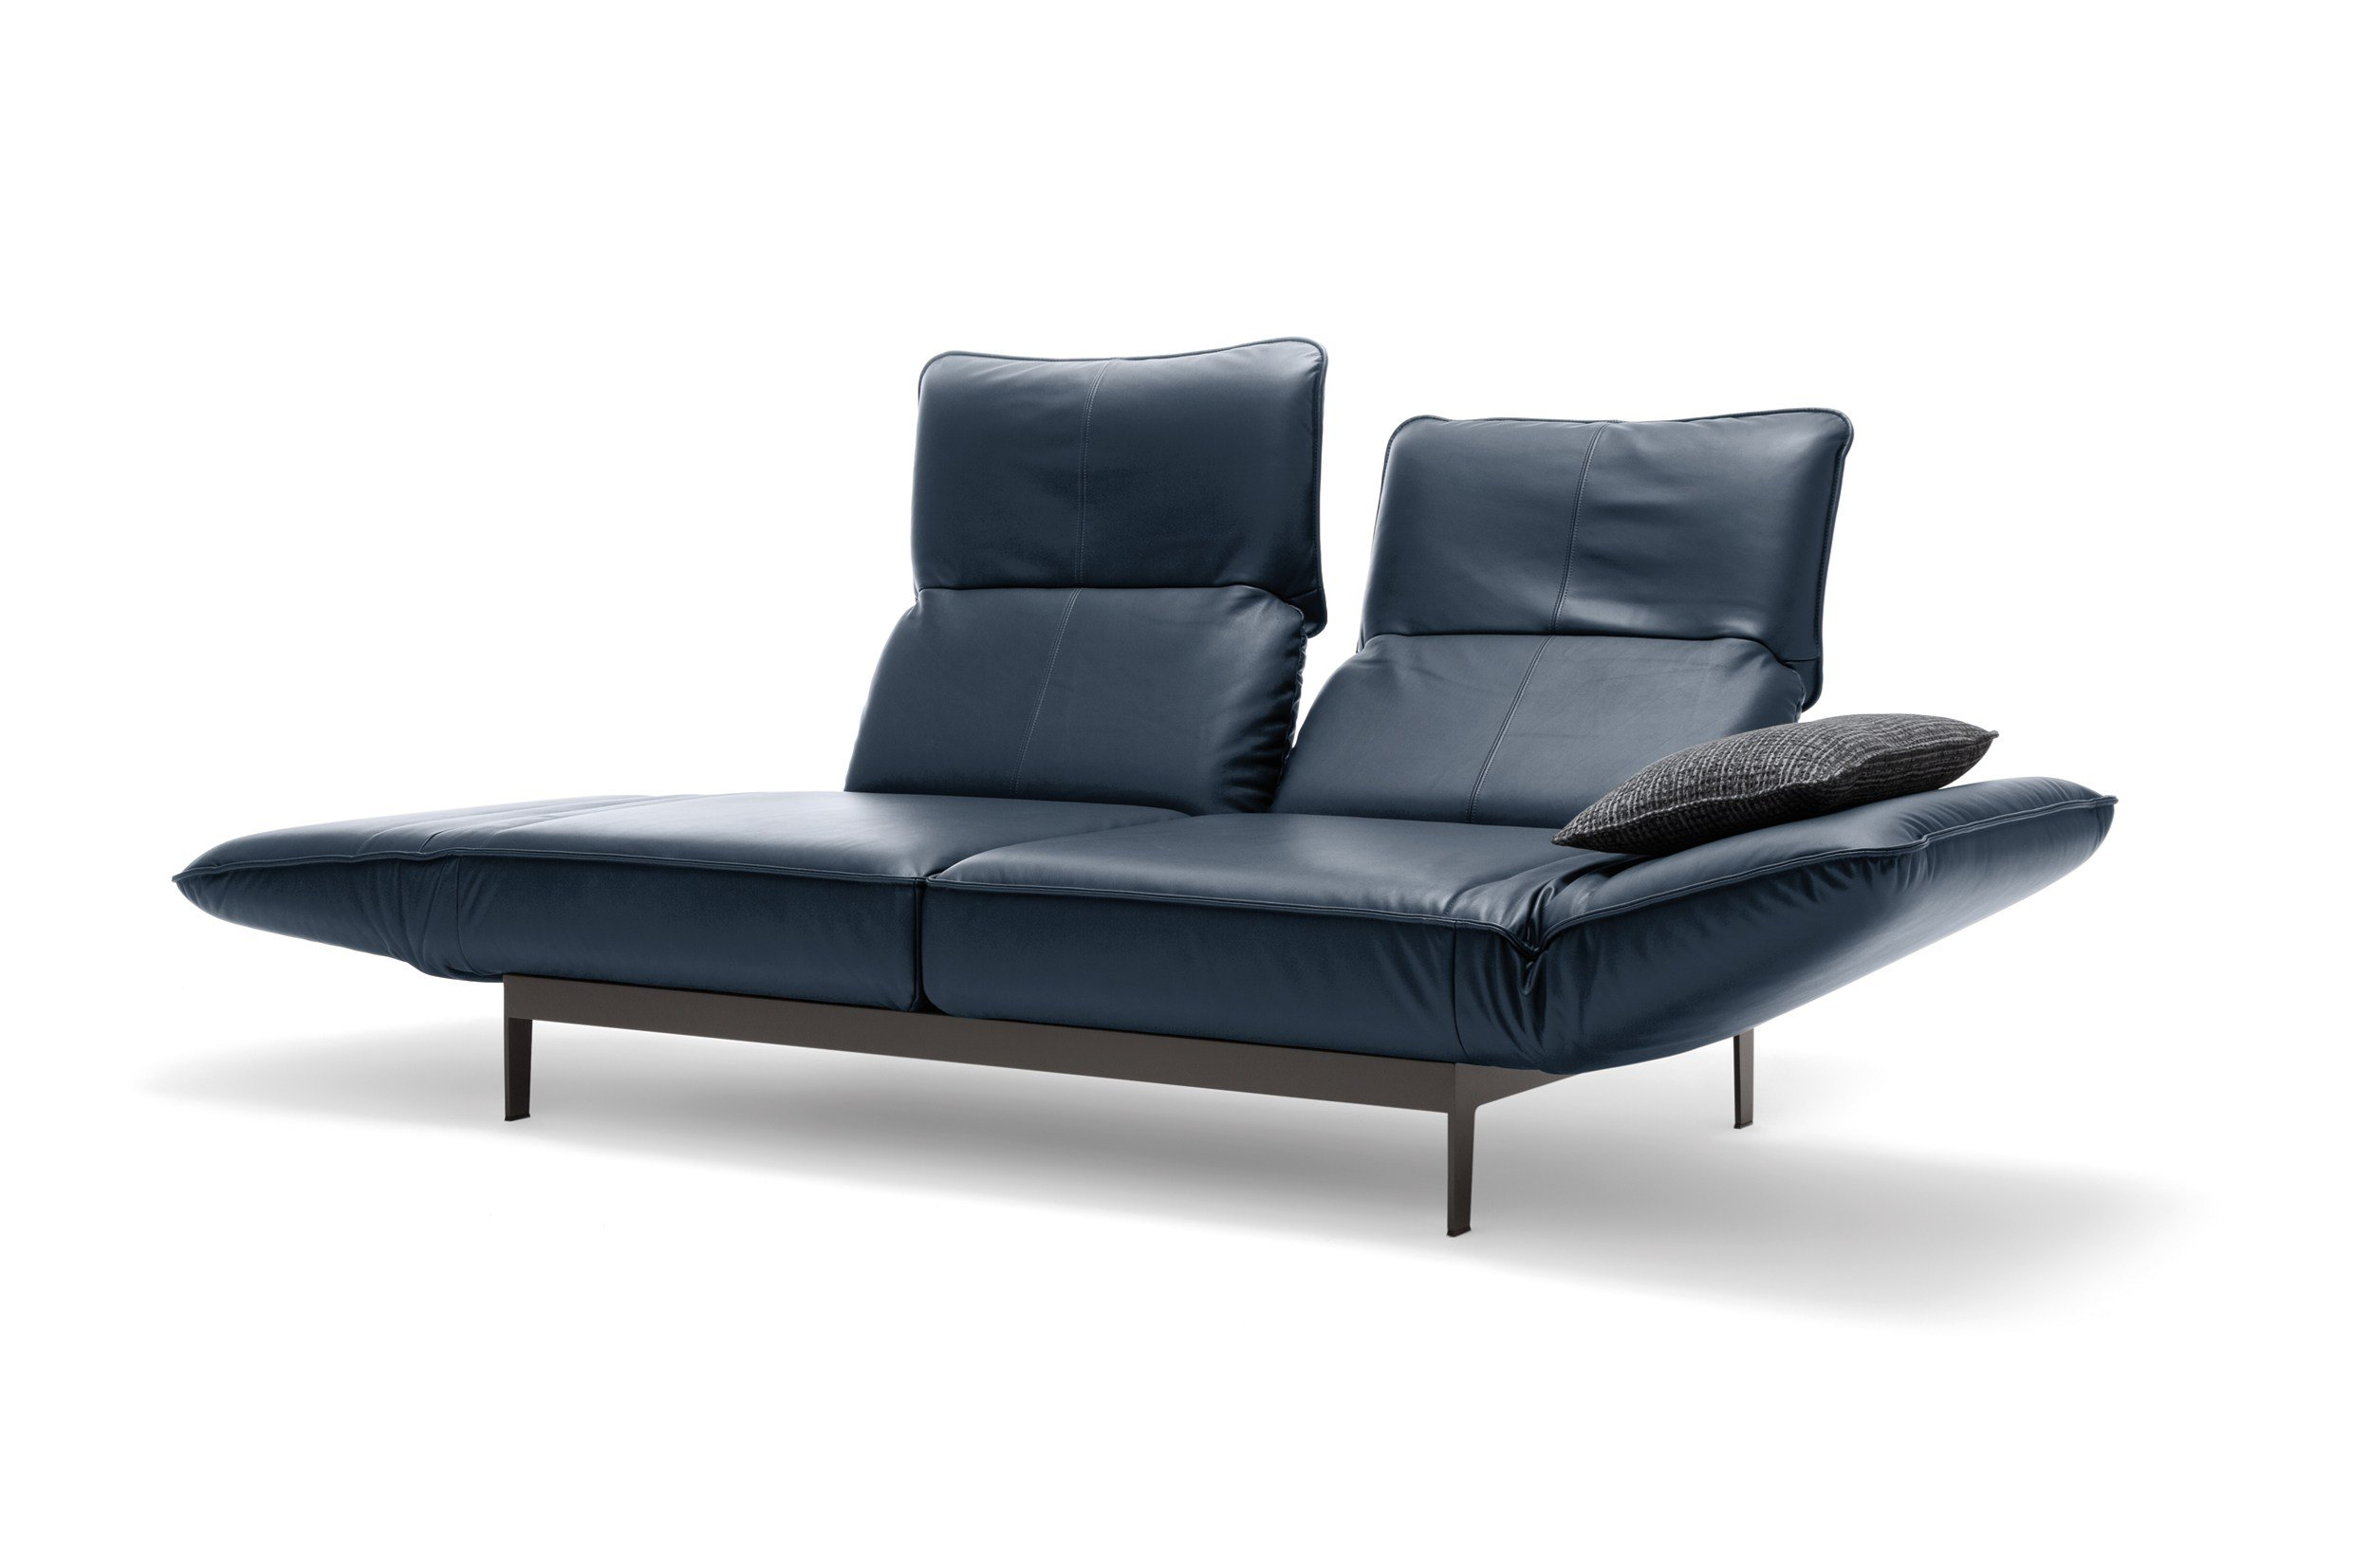 Rolf benz sofas fabric sofa grata by rolf benz design for Sofa benz rolf